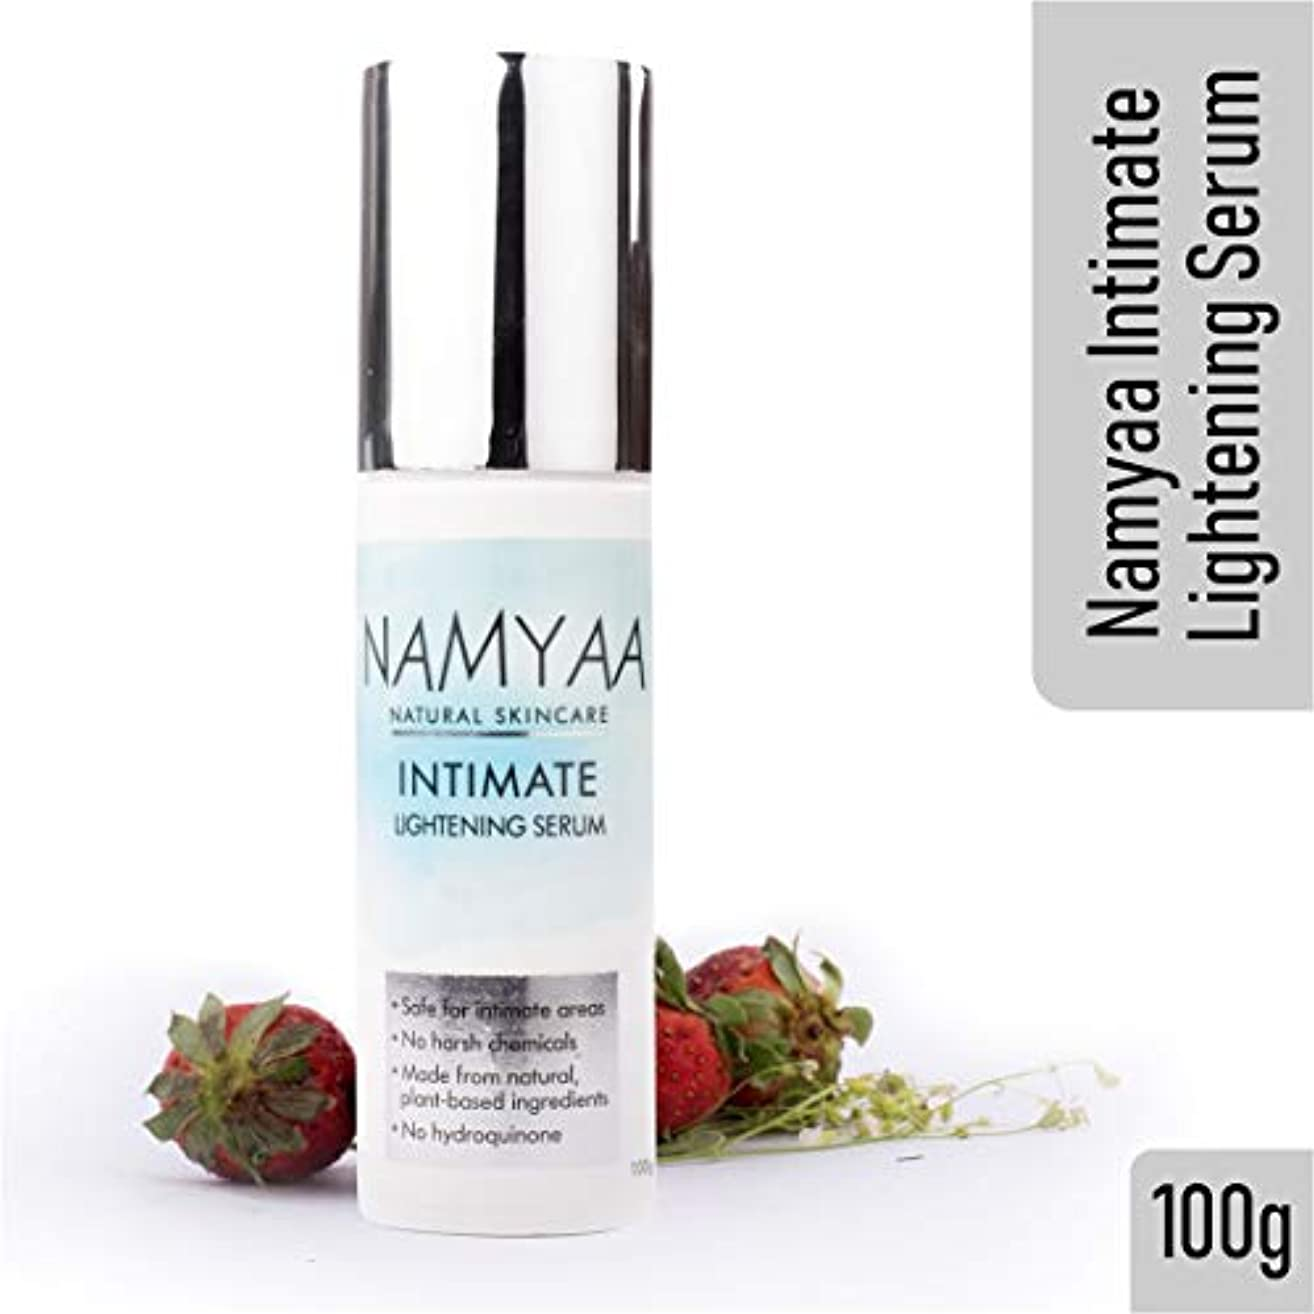 劇作家旅客垂直Qraa Namaya Intimate Lightening Serum, 100g